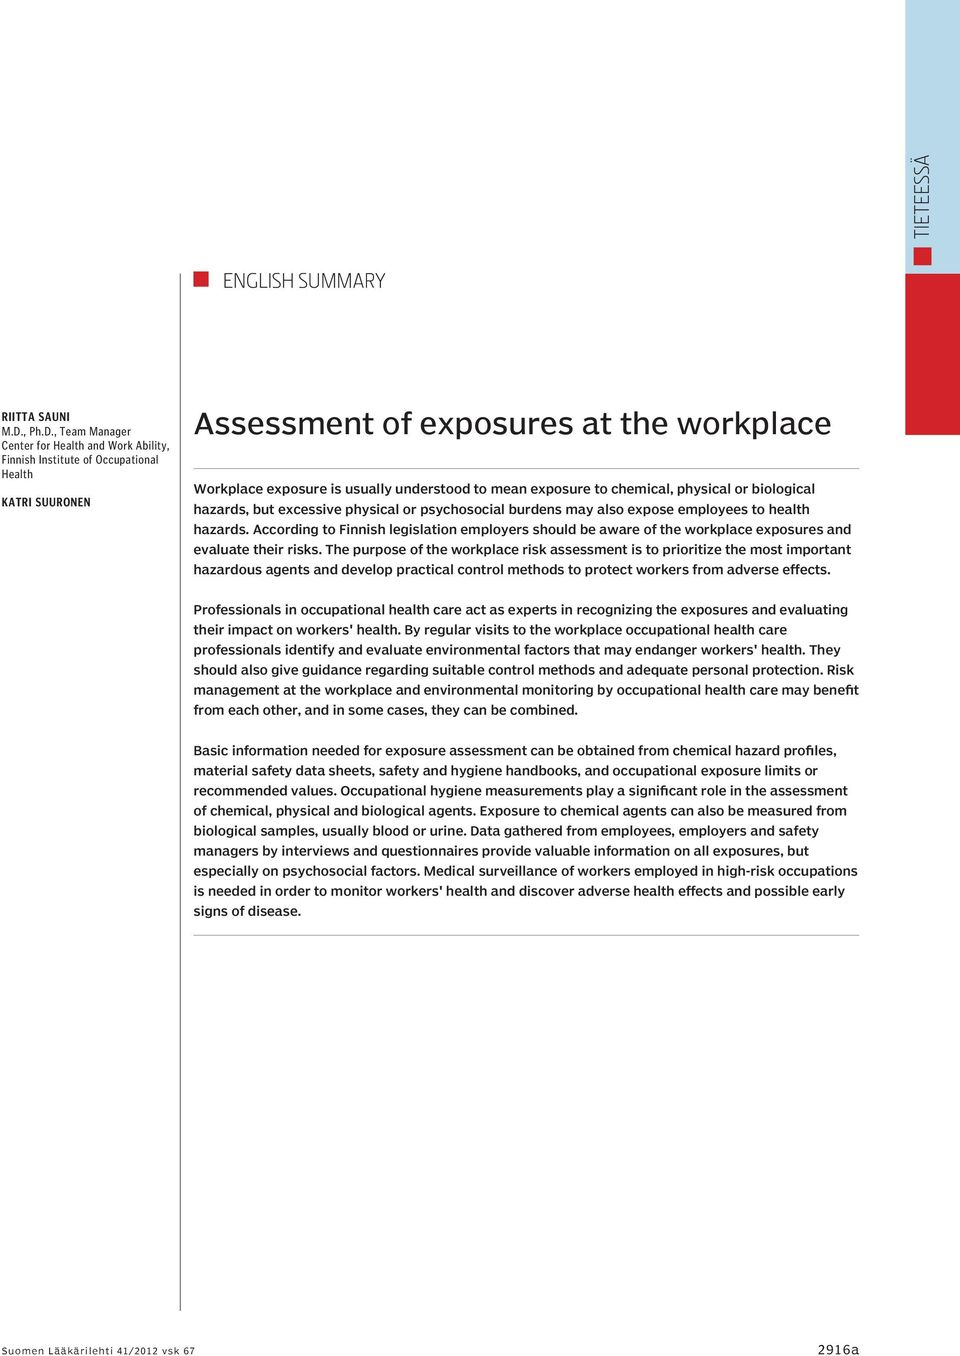 , Team Manager Center for Health and Work Ability, Finnish Institute of Occupational Health Katri Suuronen Assessment of exposures at the workplace Workplace exposure is usually understood to mean